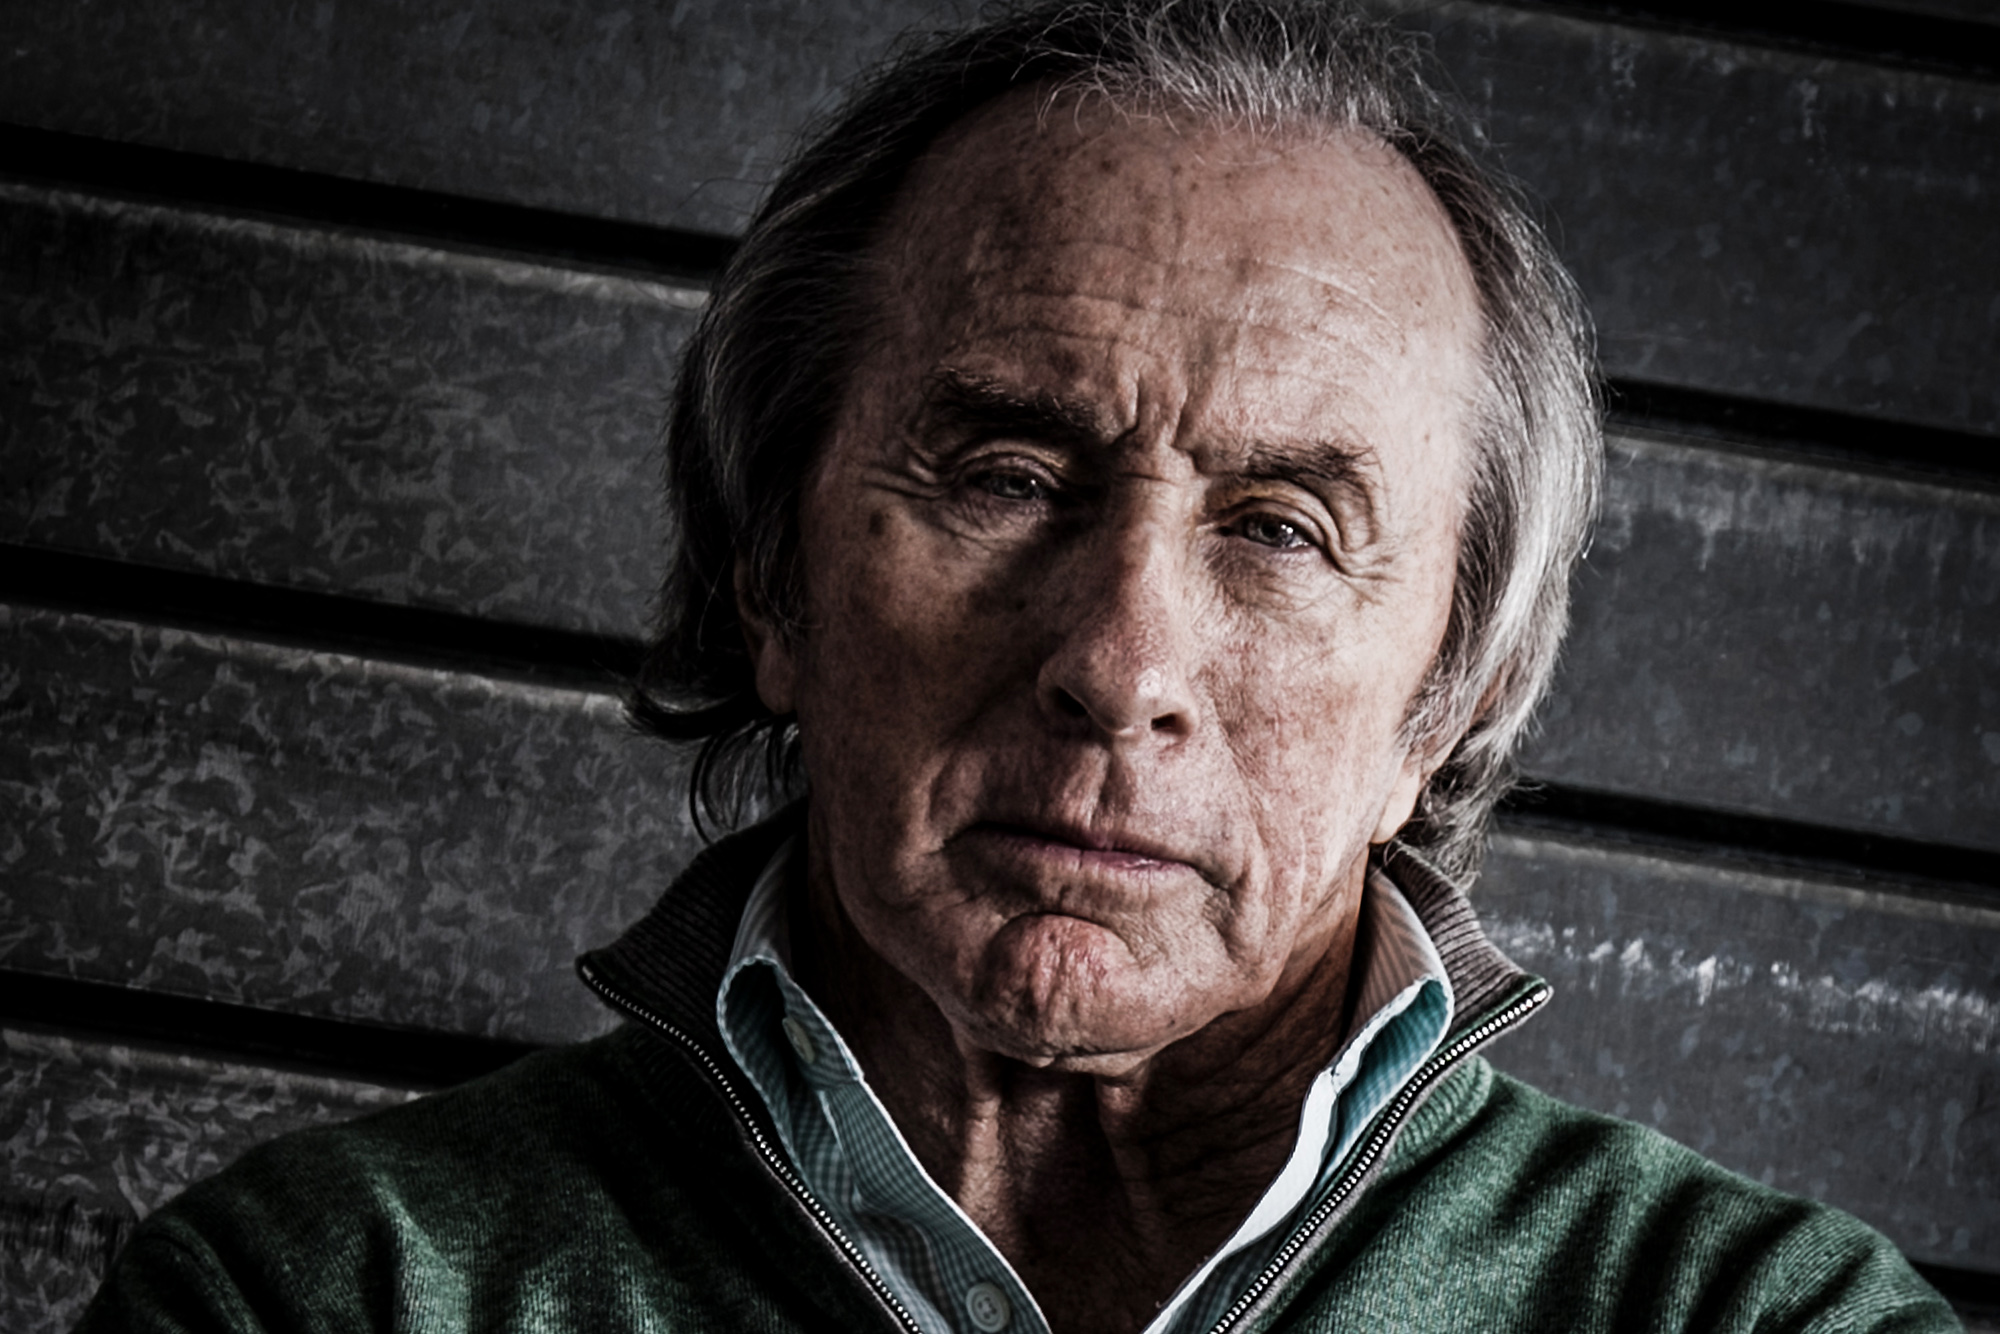 British racing legends pictured in new light for Silverstone exhibition